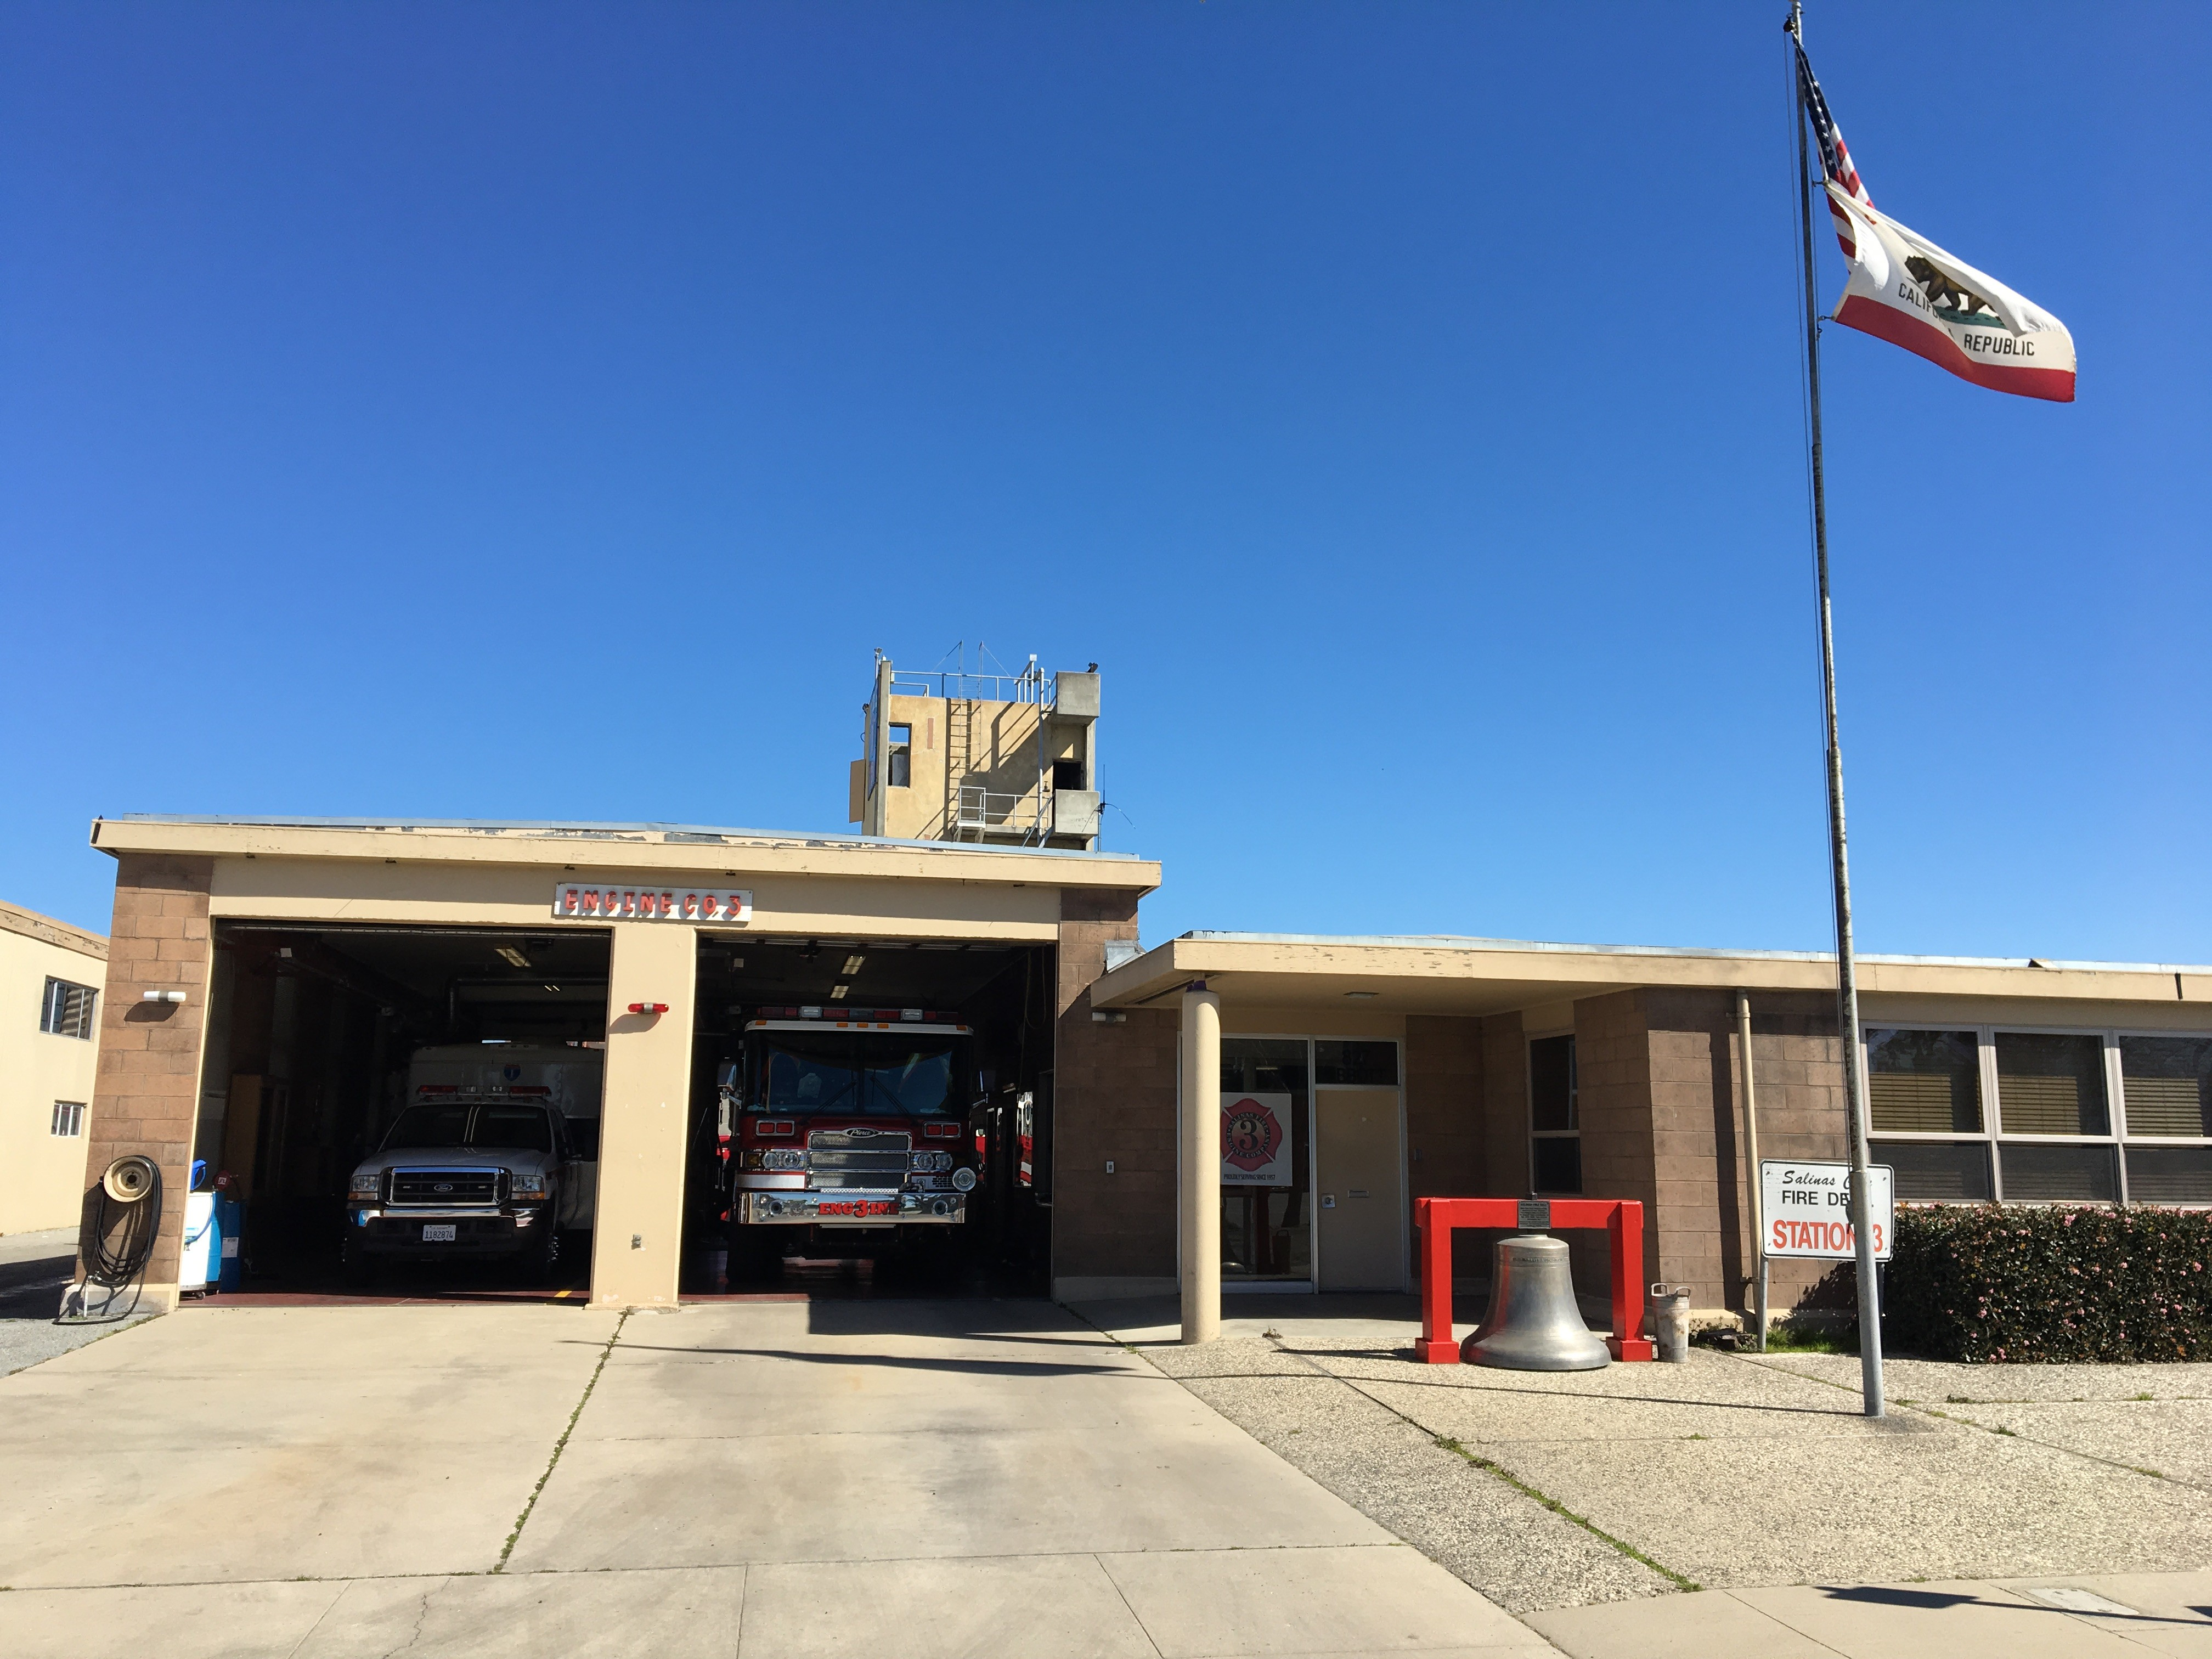 Fire Station 3 City Of Salinas